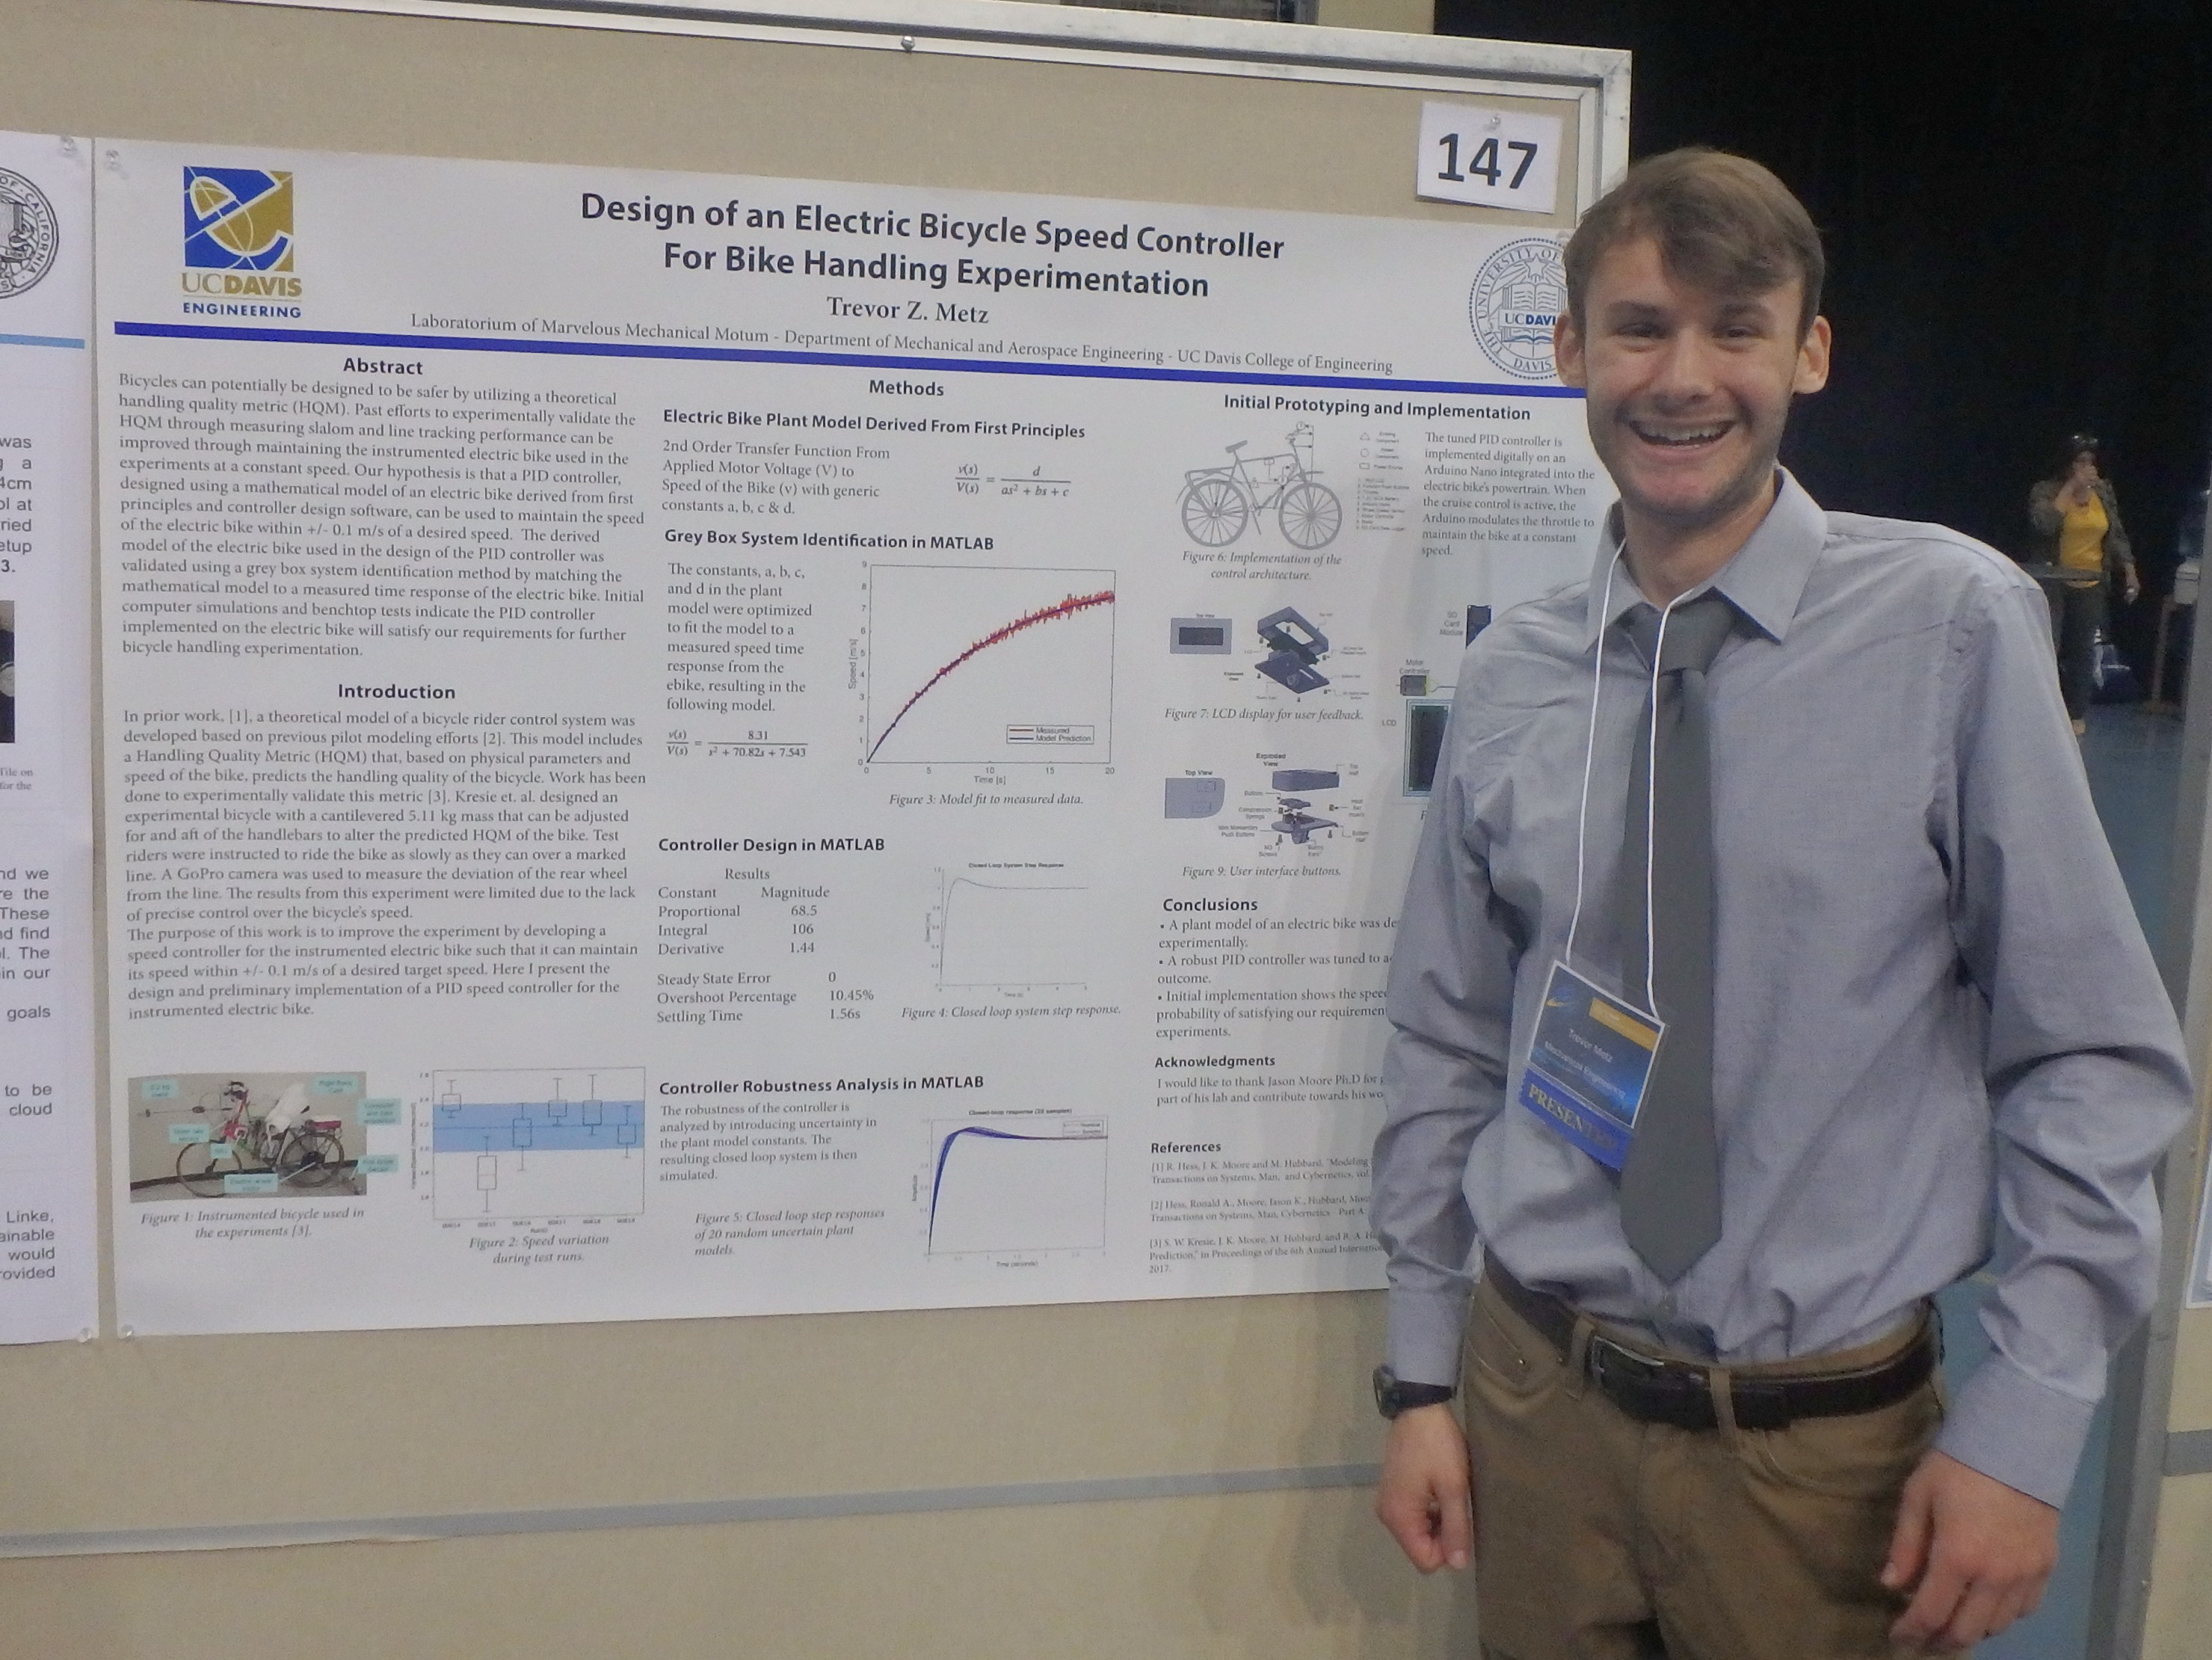 Trevor Metz standing beside his poster at the conference.